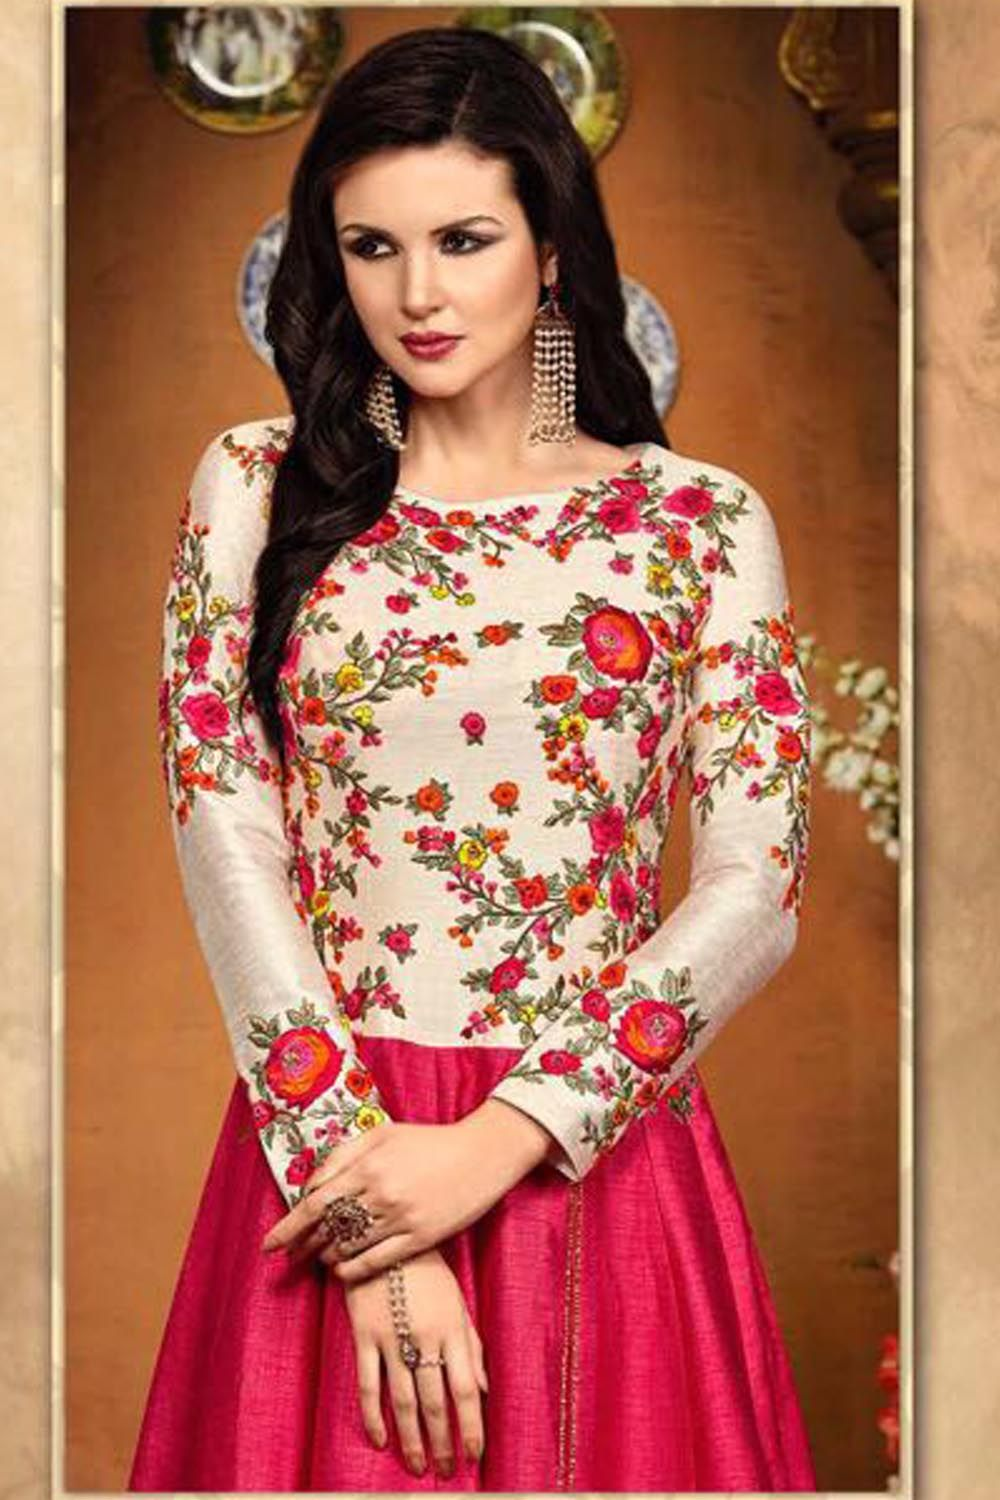 1ab8b0a1e9 Floor Length Latest Anarkali Suit RS :1499. Find this Pin and more on  Latest Ethnic Indian Dresses ...